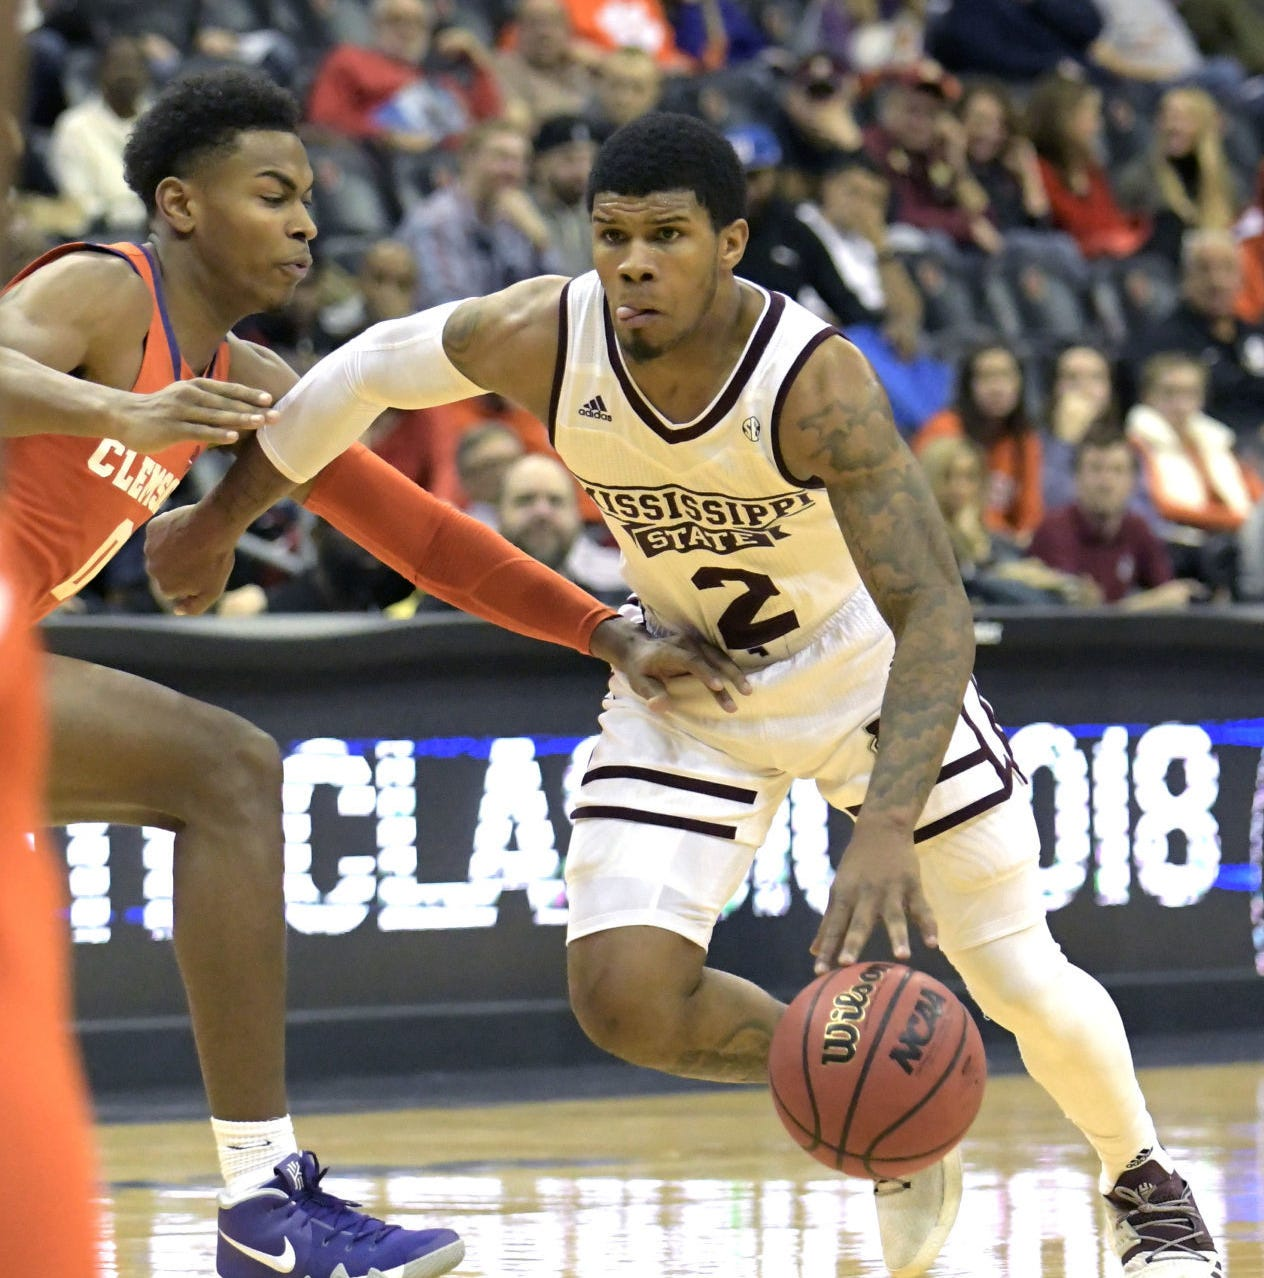 Mississippi State's three-point barrage buries Clemson in Never Forget Tribute Classic